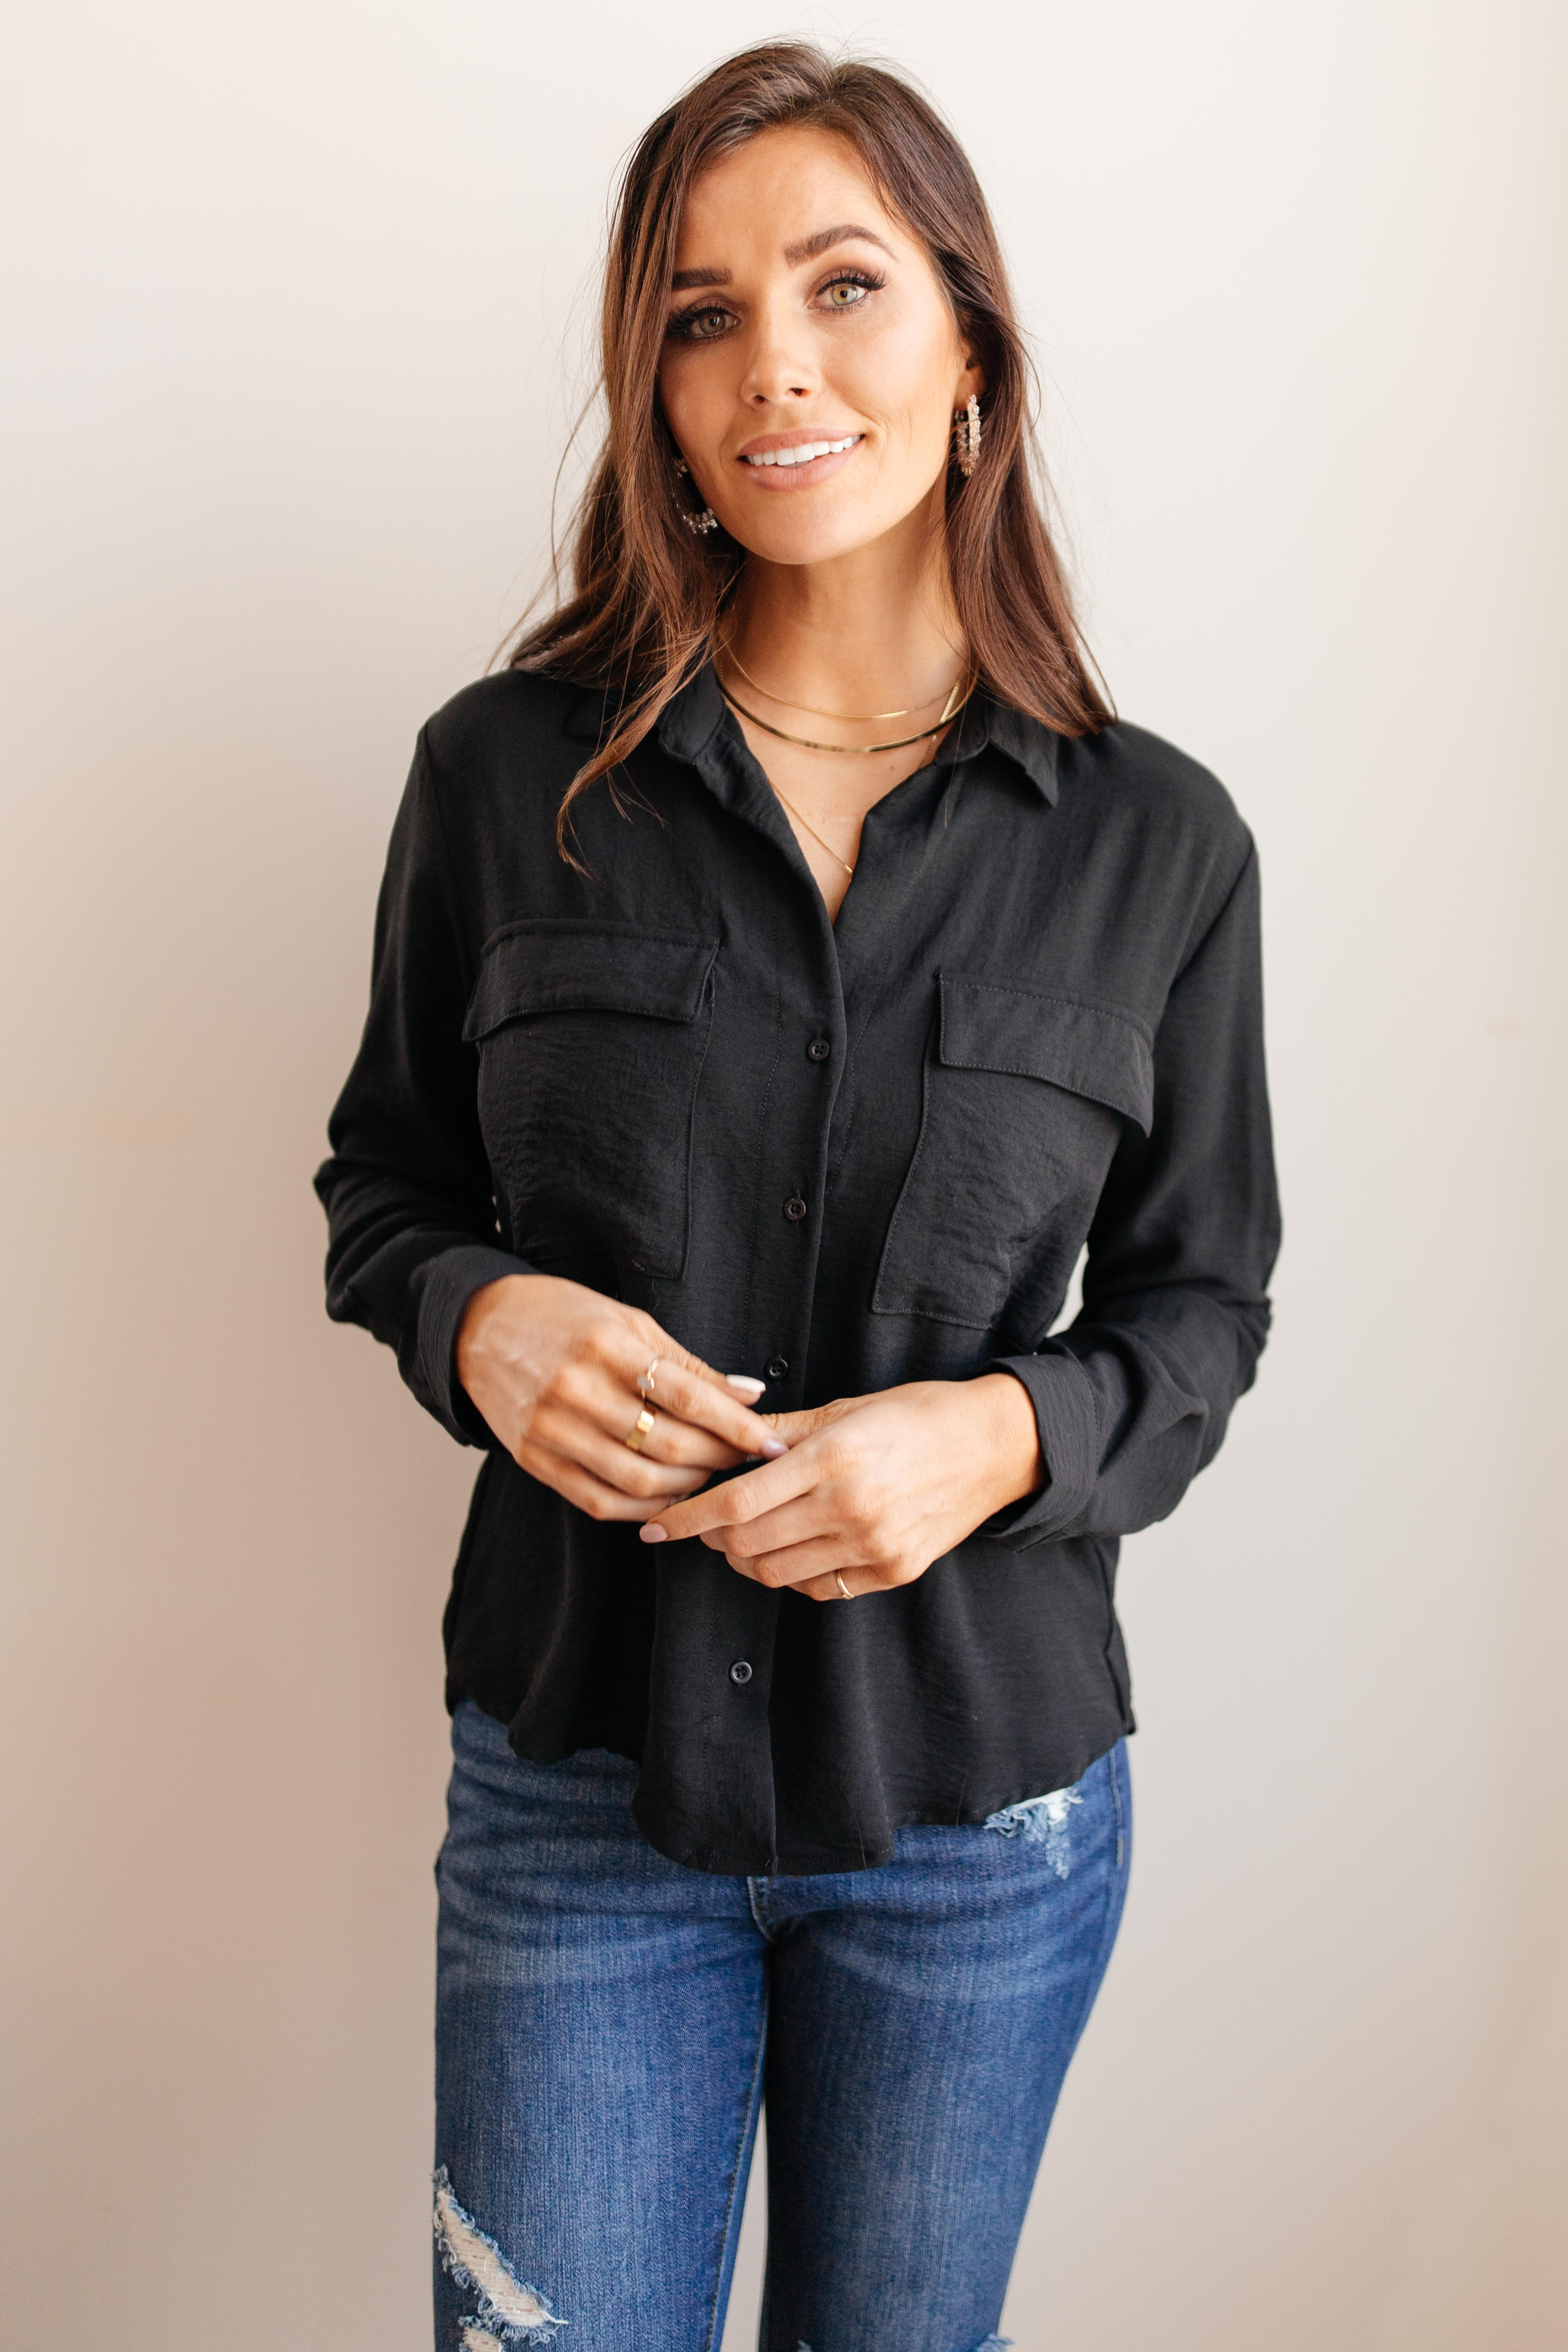 Every Girl's Go To Black Button Down - Lola Cerina Boutique